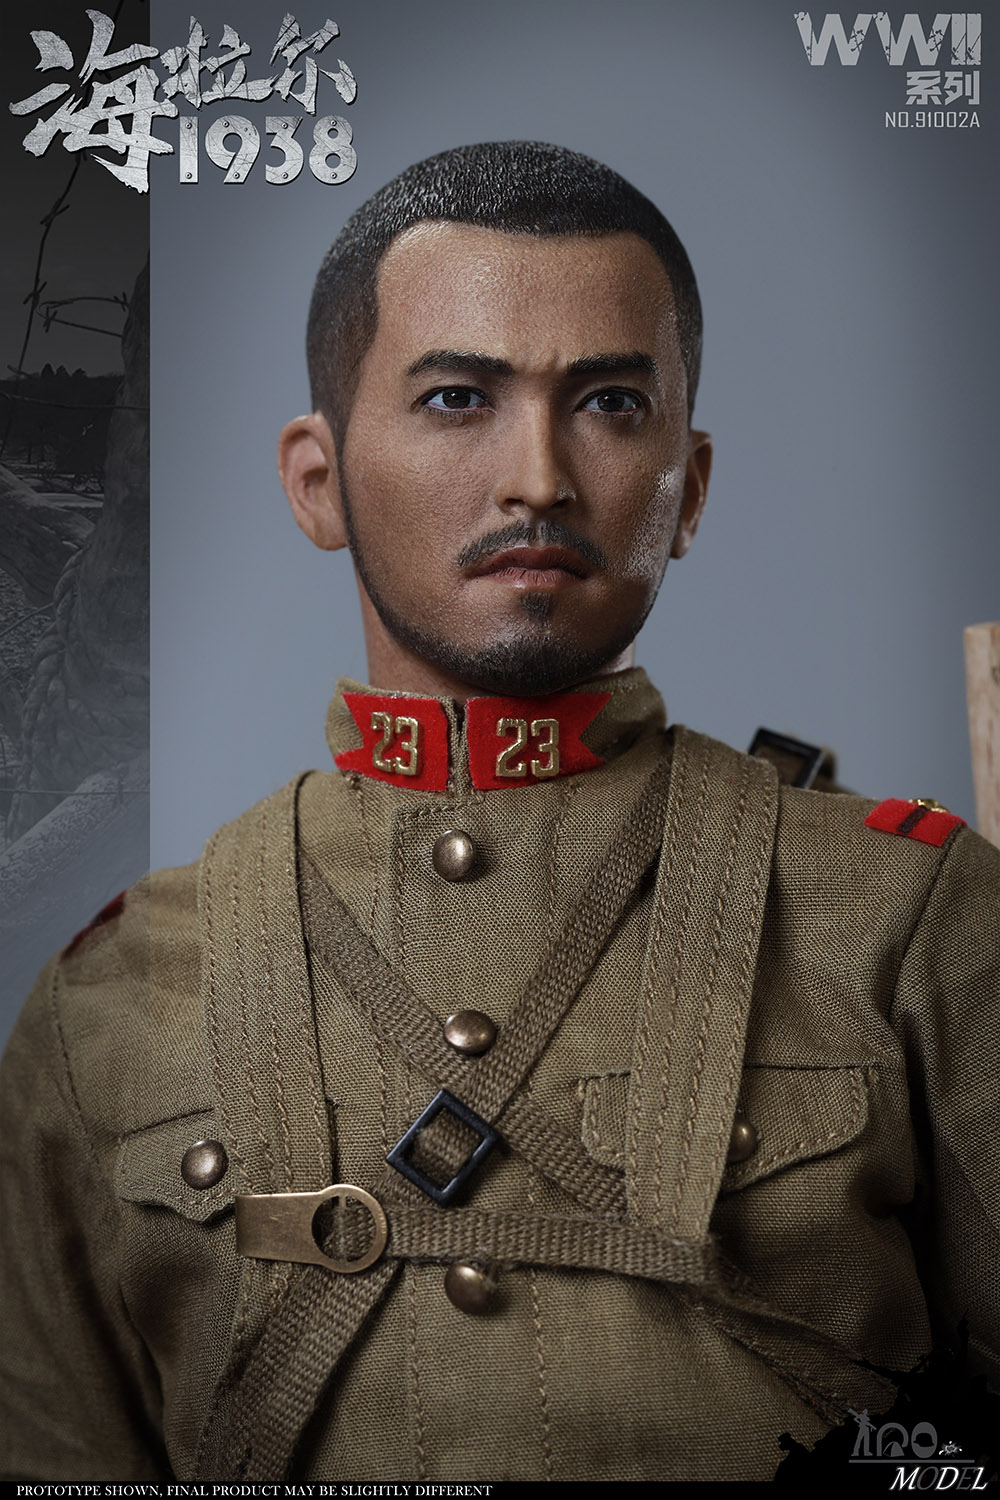 male - NEW PRODUCT: IQO Model: 1/6 WWII Series 1938 Hailar Scout (NO.91002A, B) 22050911